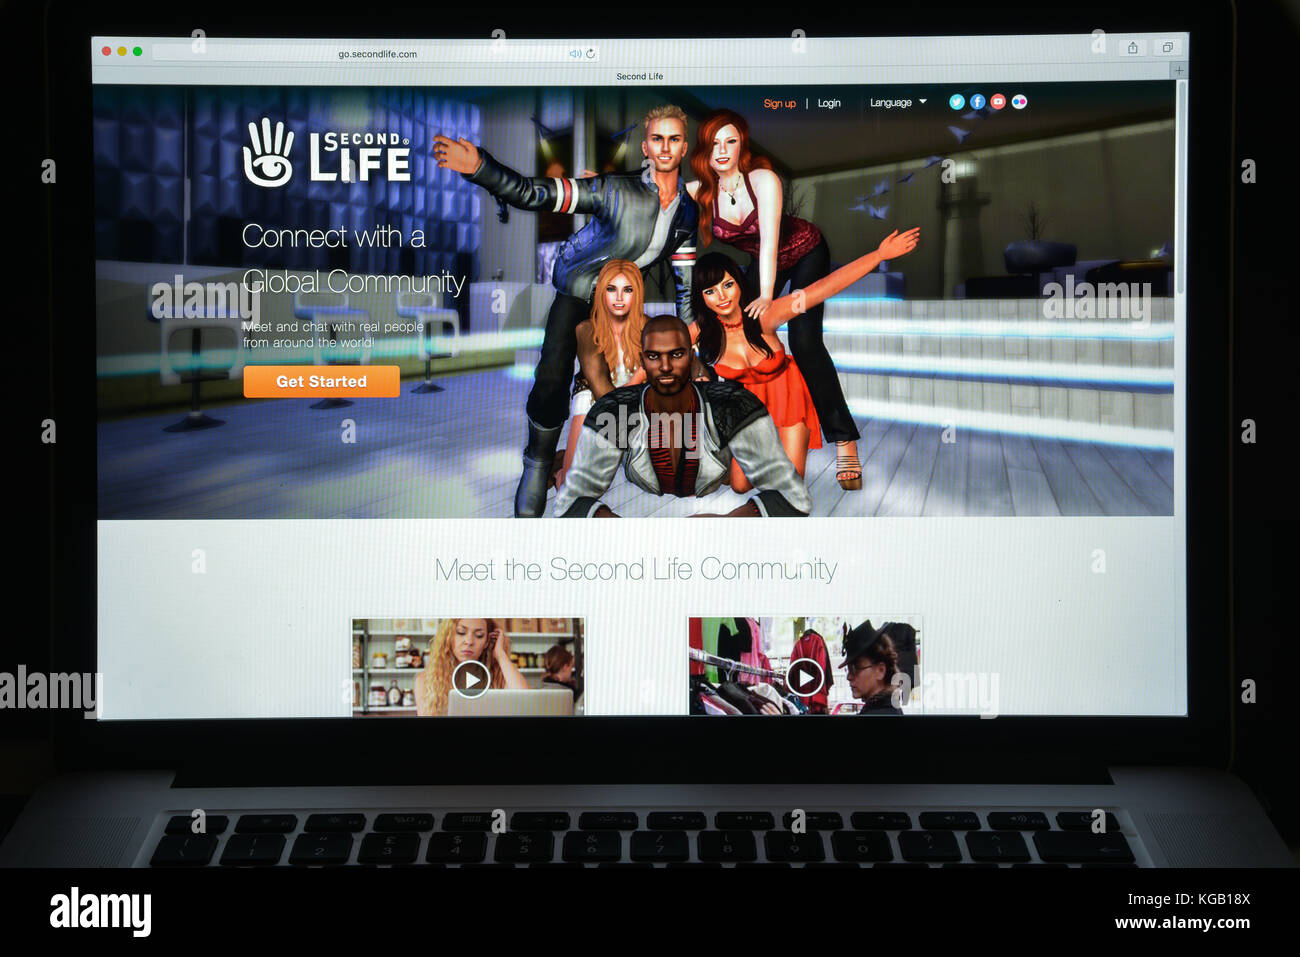 Milan, Italy - August 10, 2017: Second life website homepage